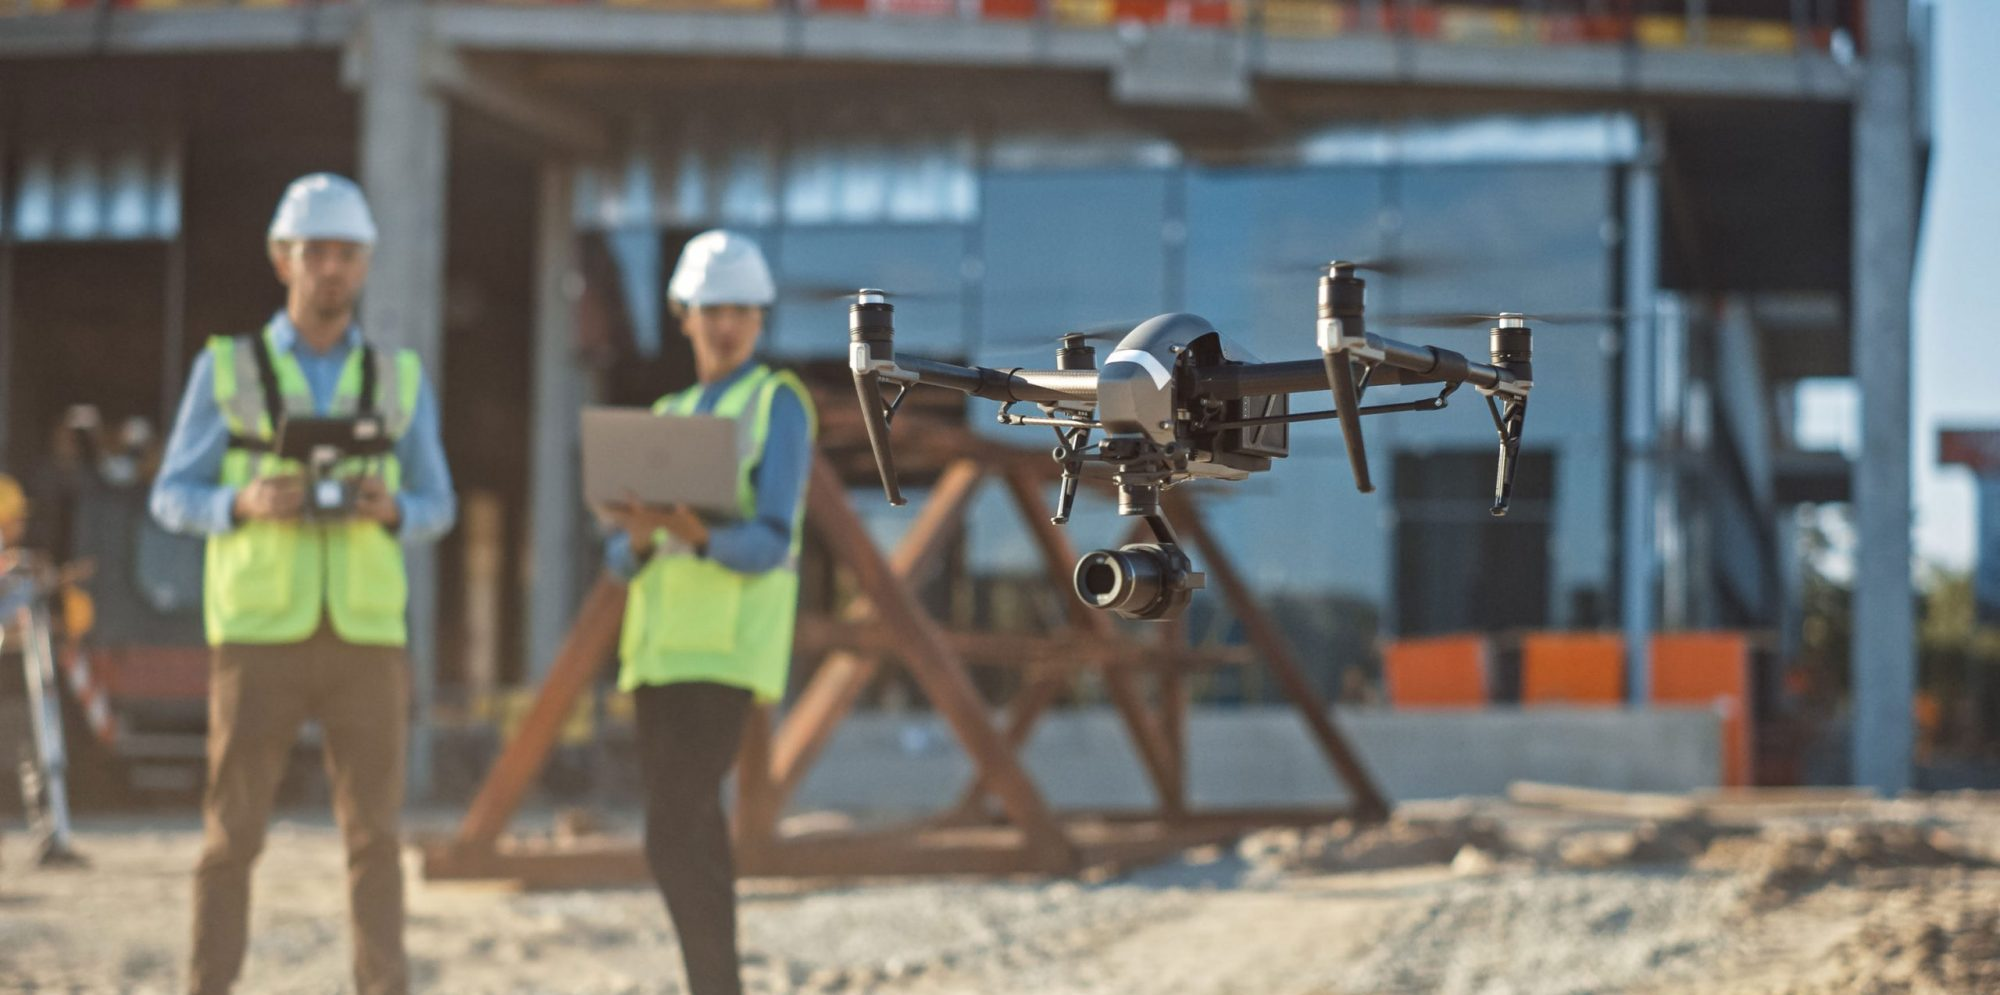 Using Drones in Construction